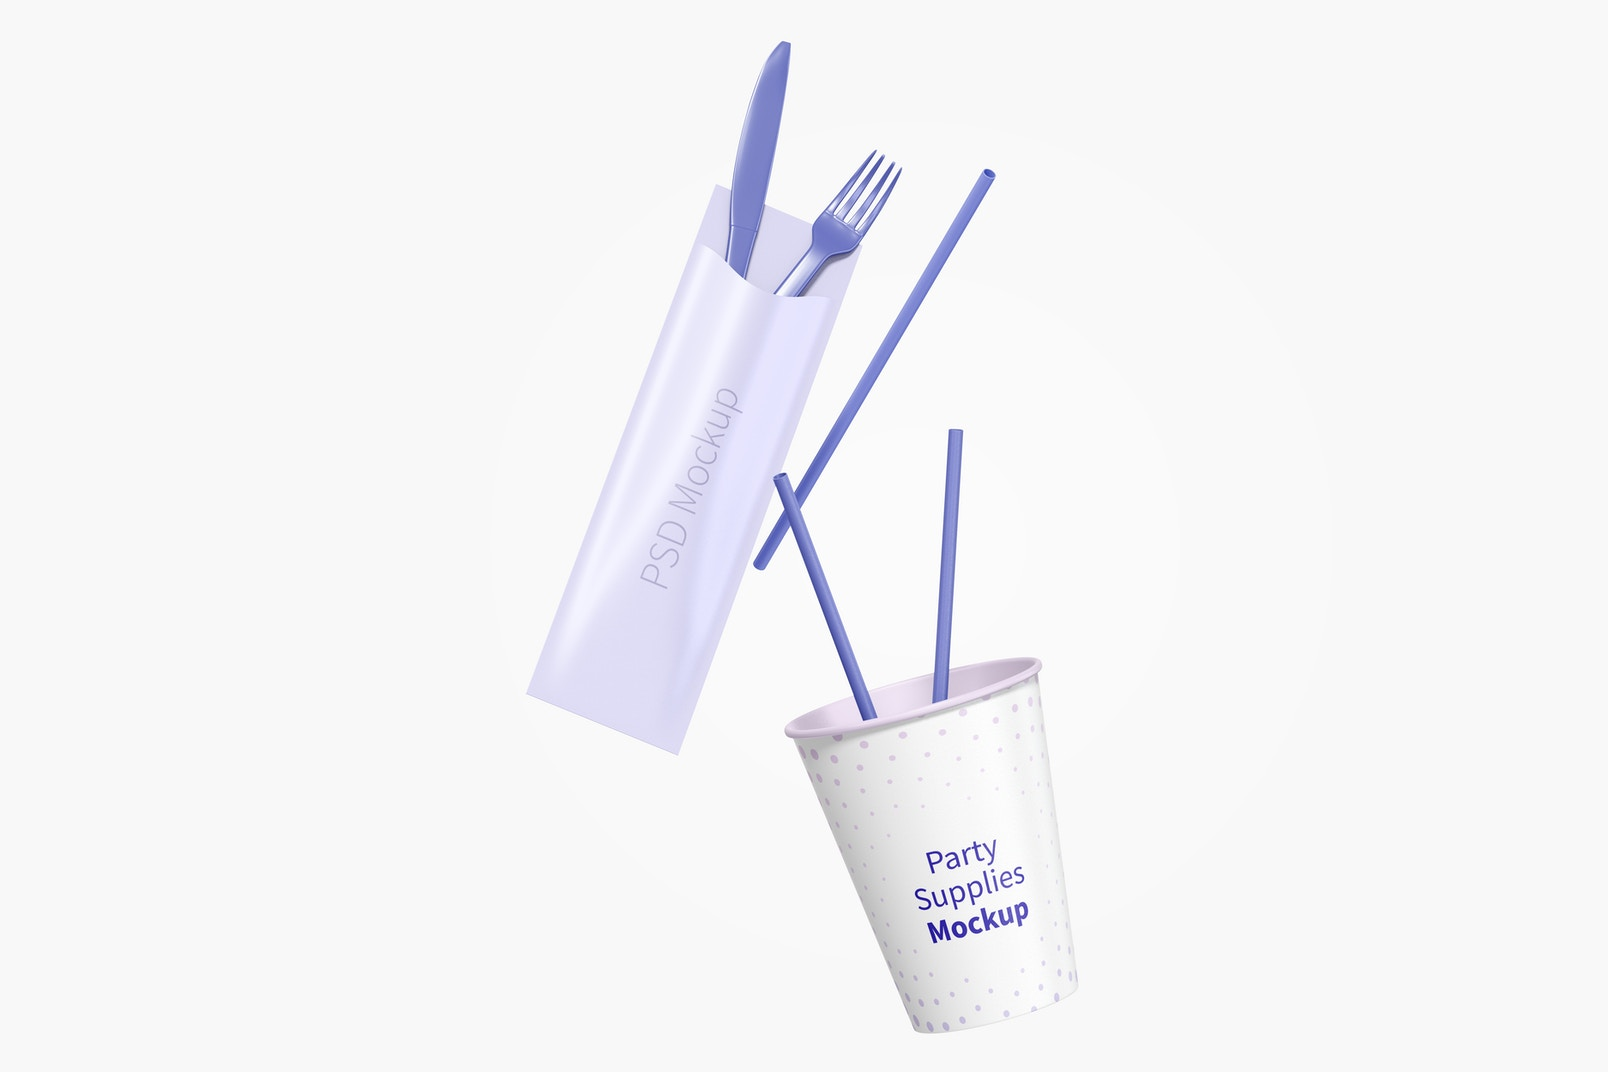 Party Supplies Mockup, Floating